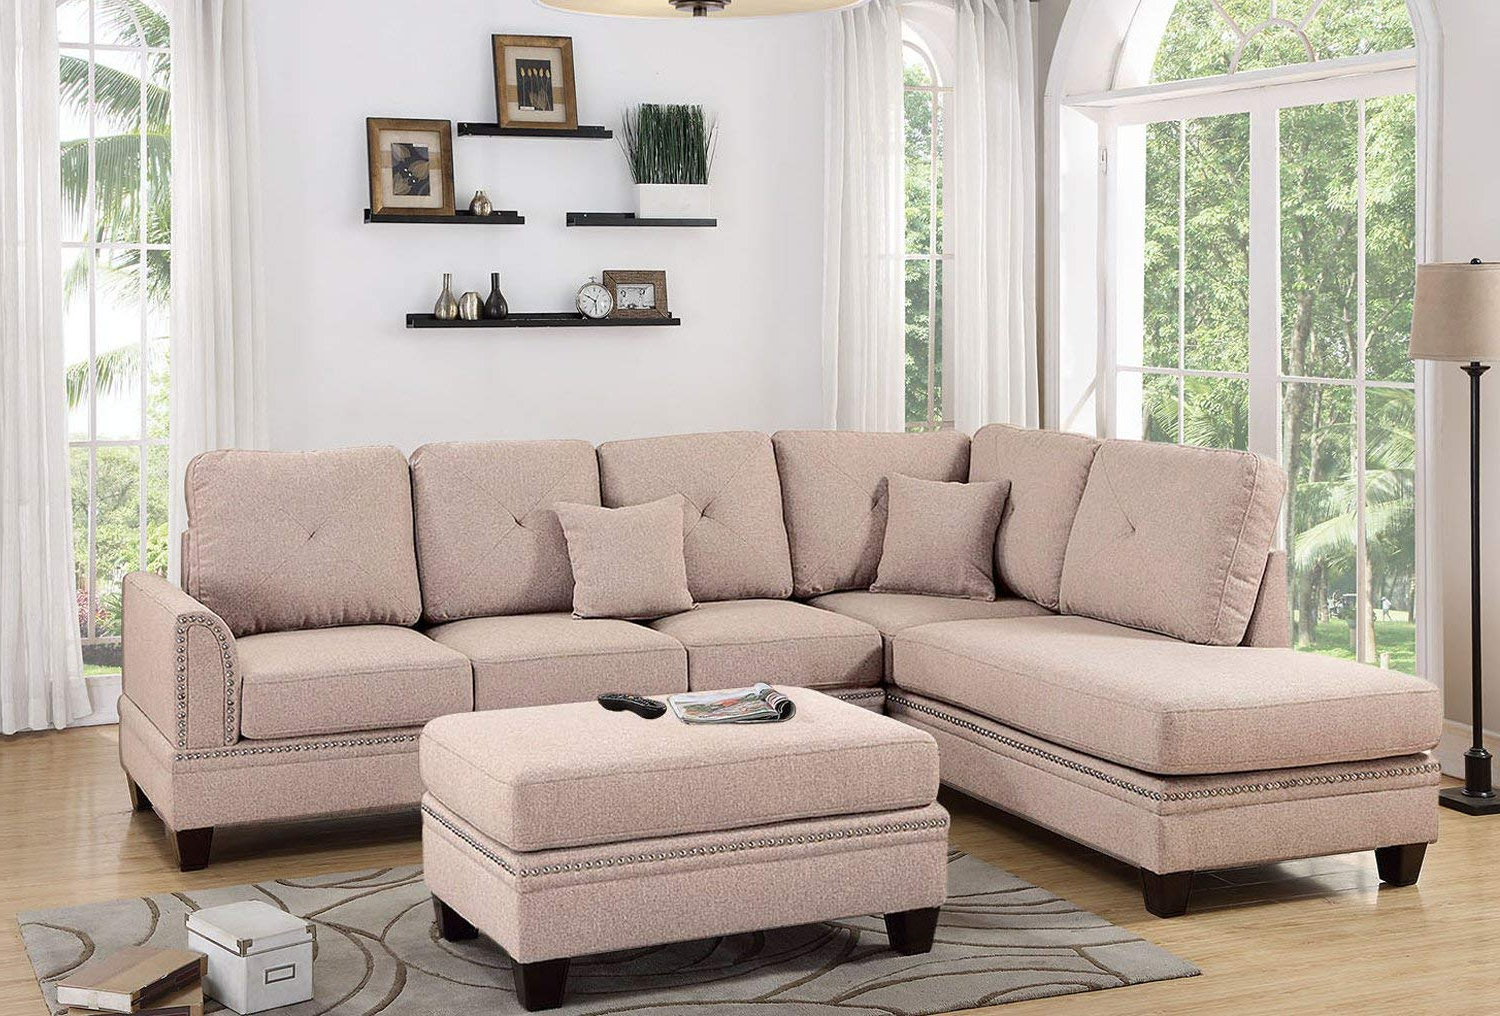 Famous 2Pc Polyfiber Sectional Sofas With Nailhead Trims Gray With Coffee 2Pc Sectional Sofa With Nail Head Trim Accents (View 15 of 25)